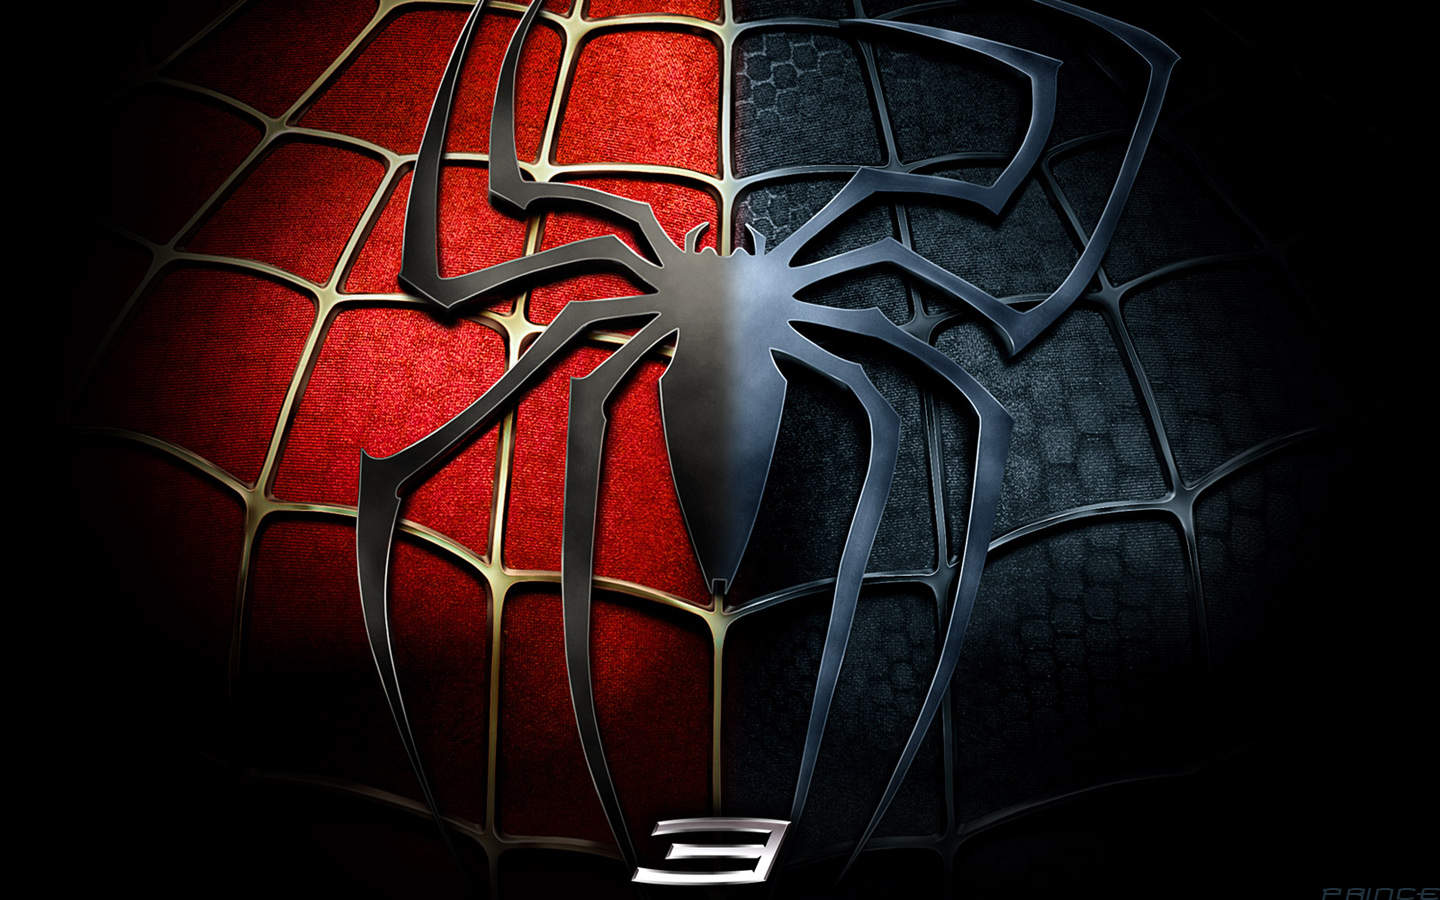 http://3.bp.blogspot.com/-EIaBYr4YPQA/Ti-V3KwMWrI/AAAAAAAAAAk/pojv_jn_YO0/s1600/DLDLD_Spider-Man_3-Wallpapers_pack-4.jpg_Spider-Man_3-029.jpg